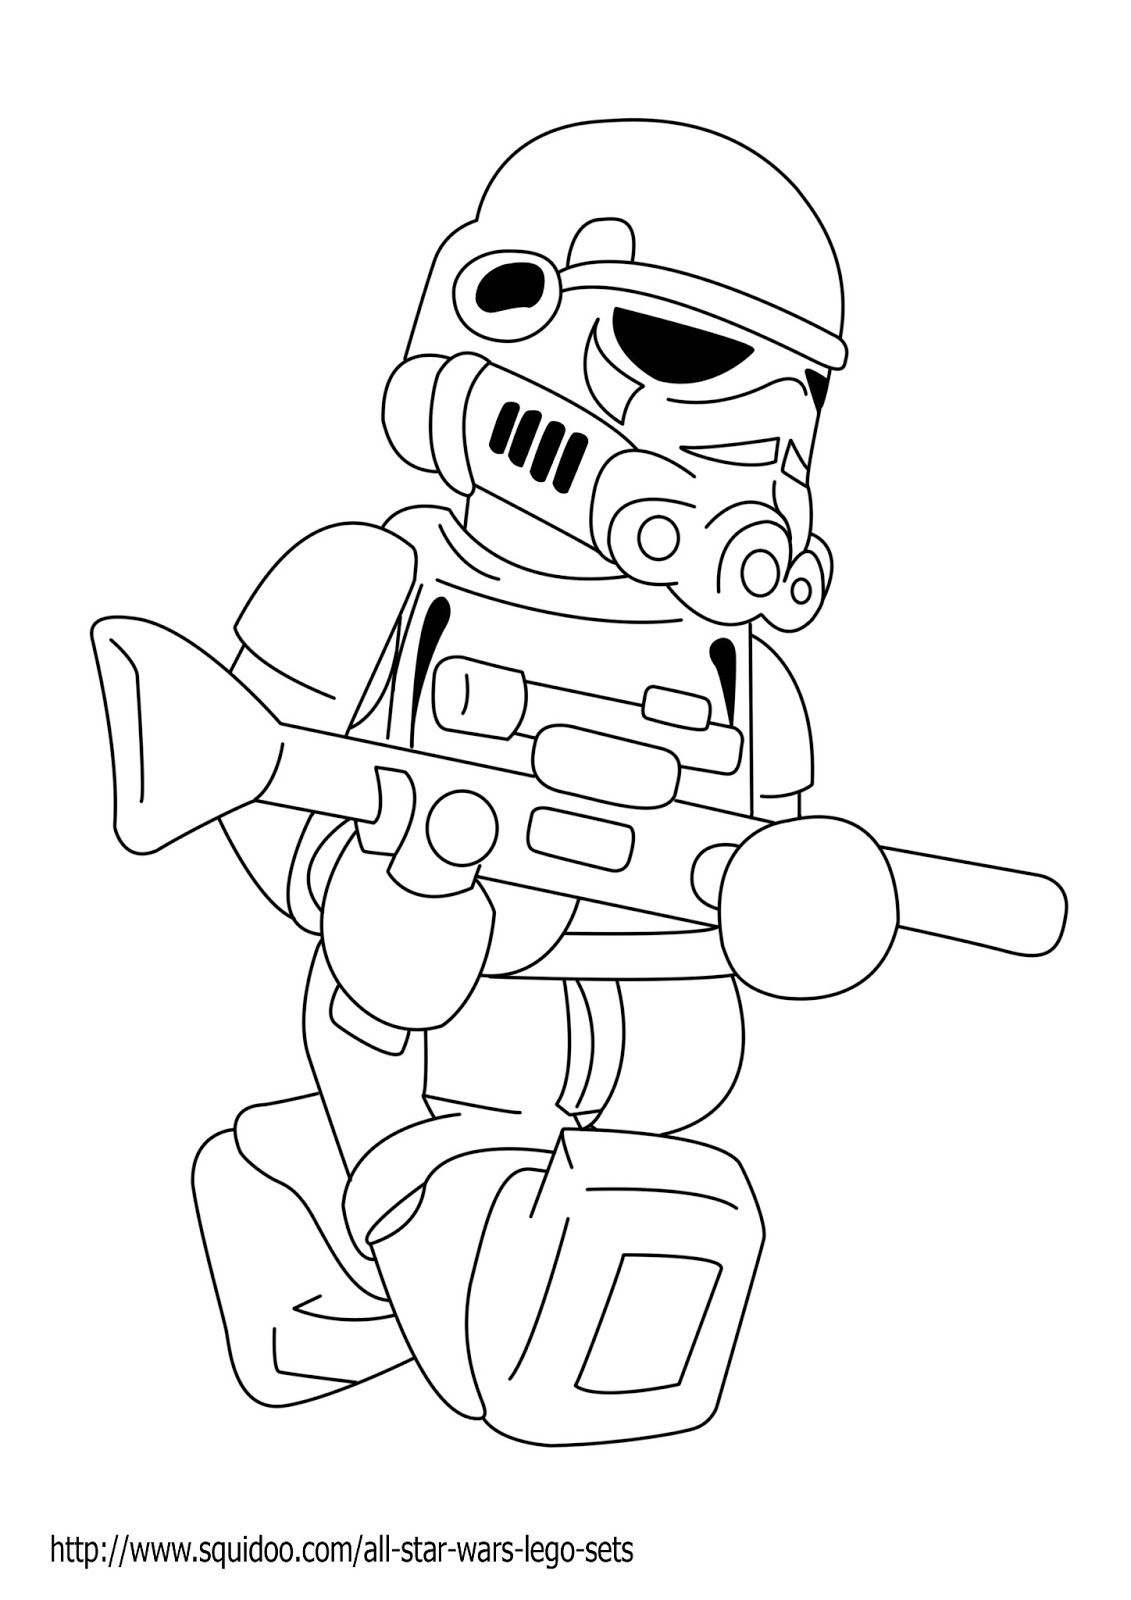 Lego Star Wars Coloring Pages Printable Star Wars Coloring